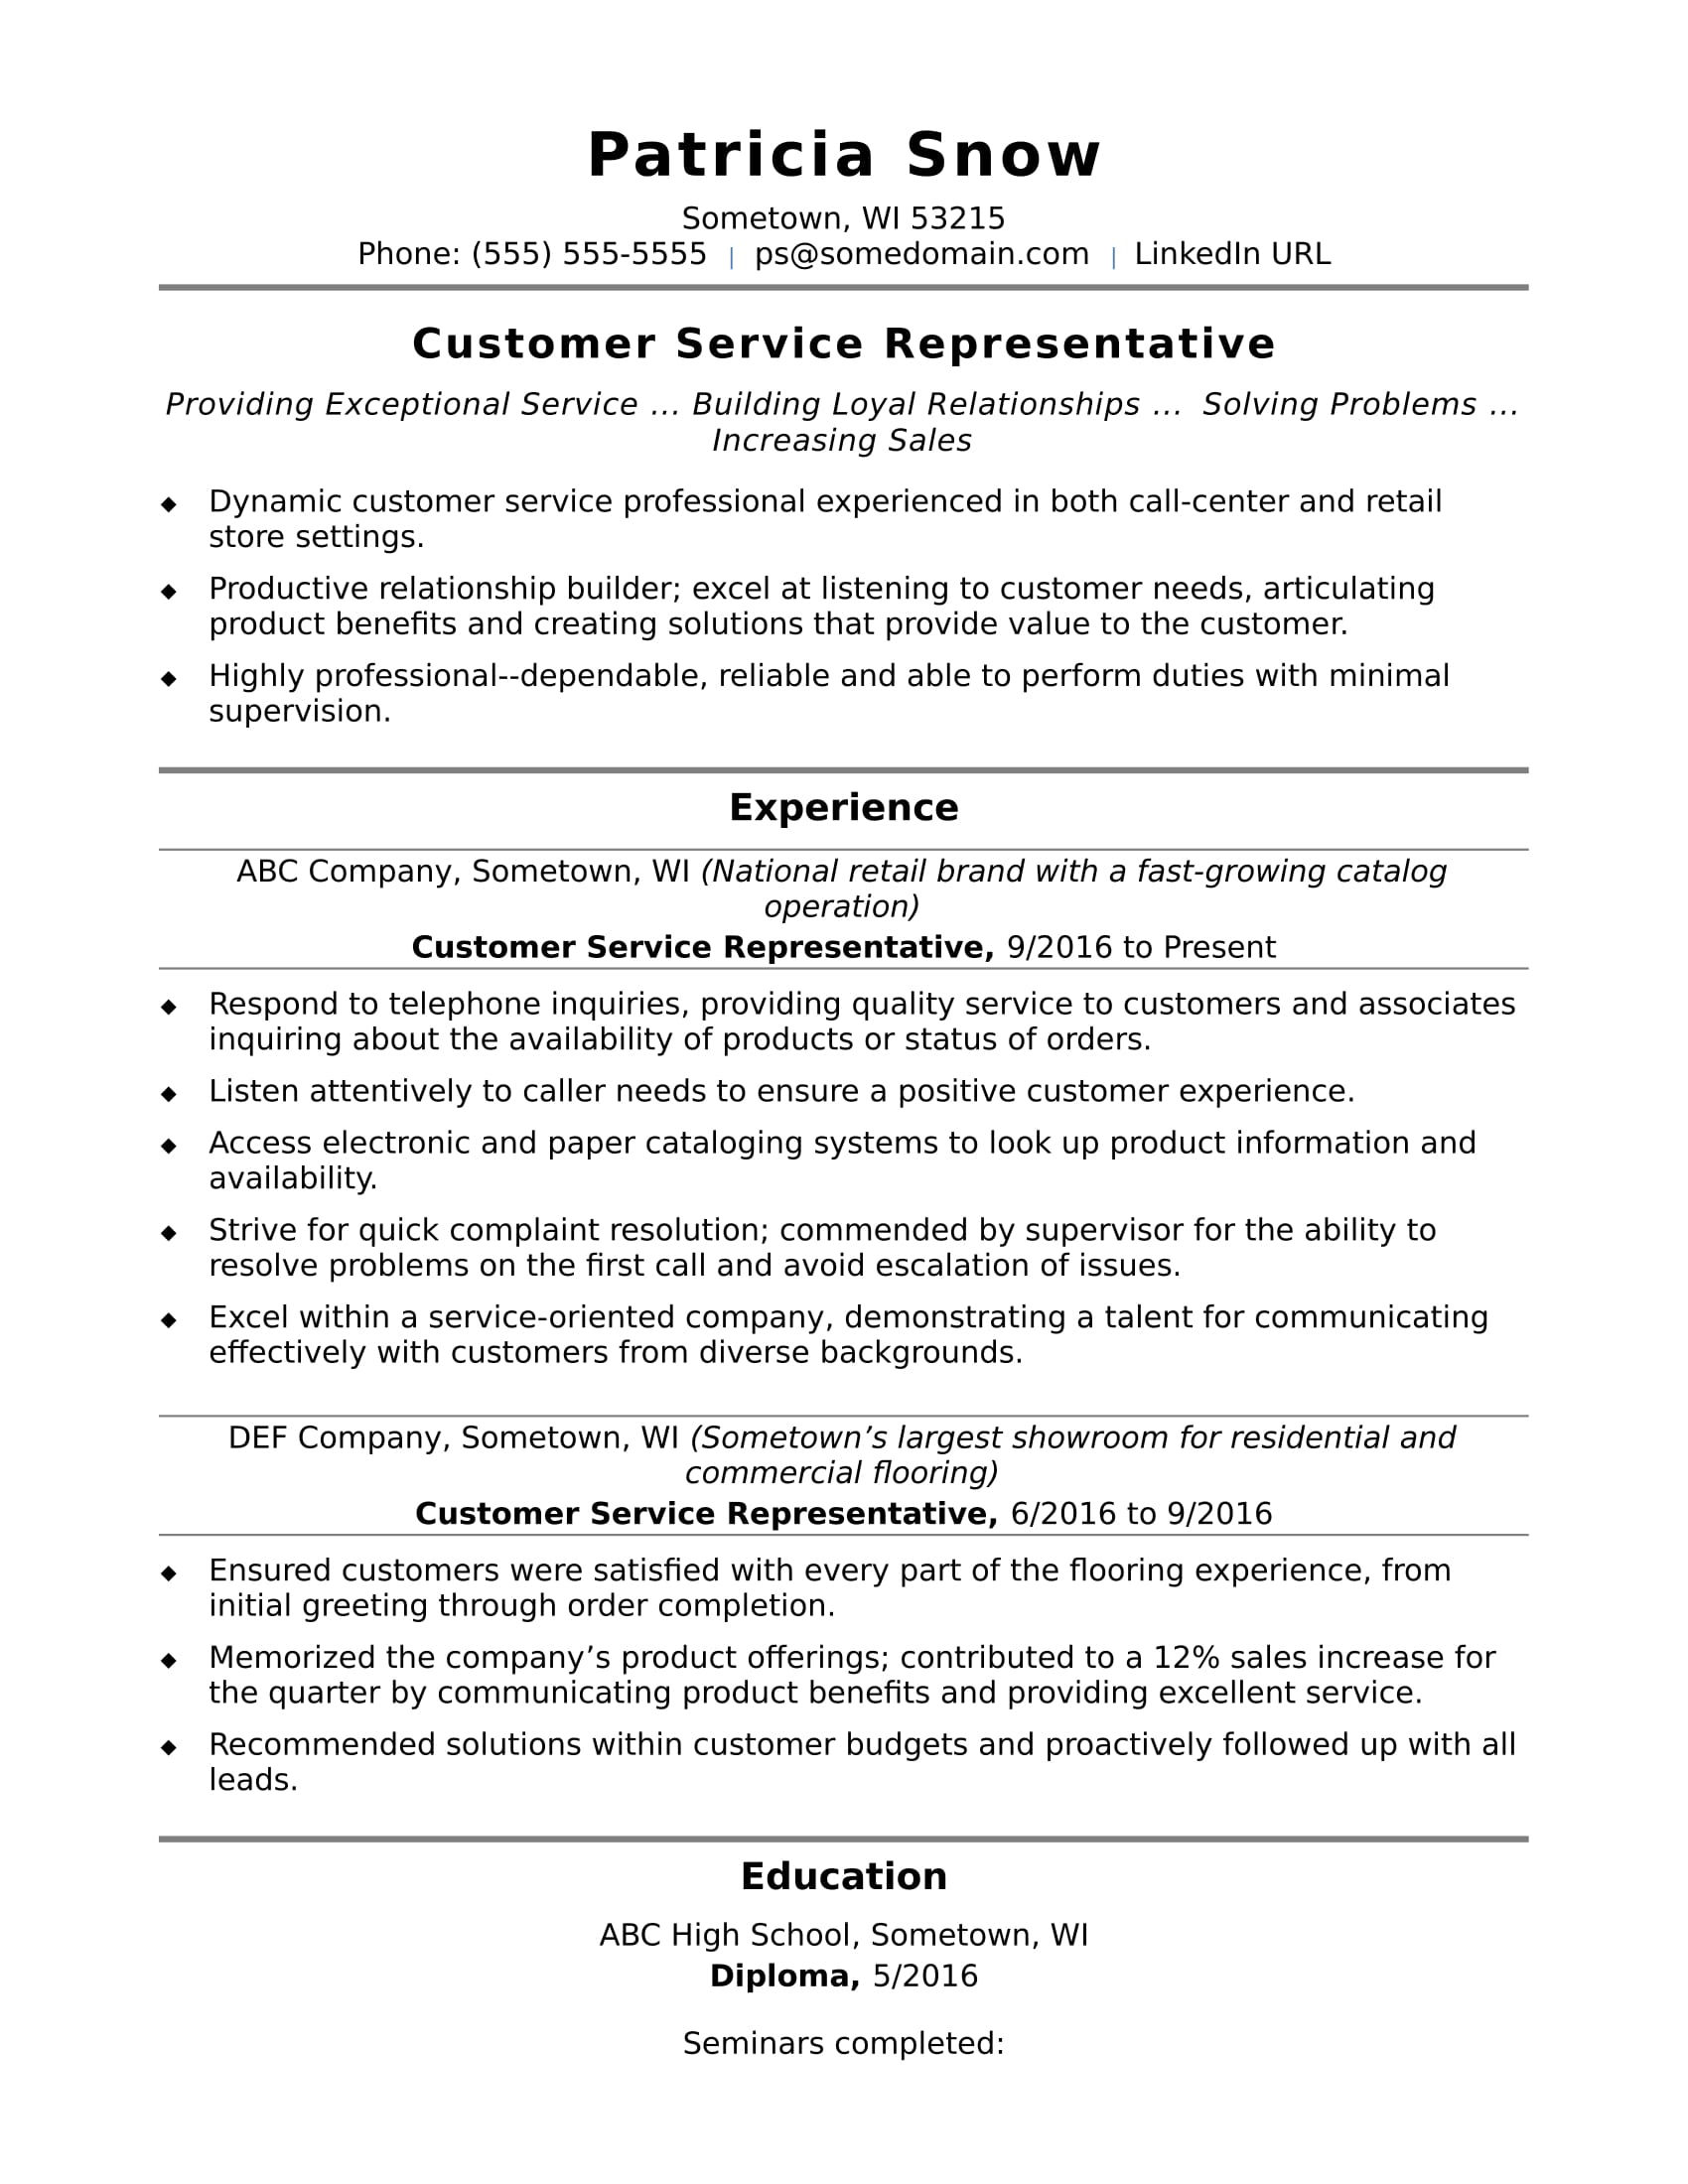 customer service representative resume sample monster good summary for entry level social Resume Good Customer Service Summary For Resume